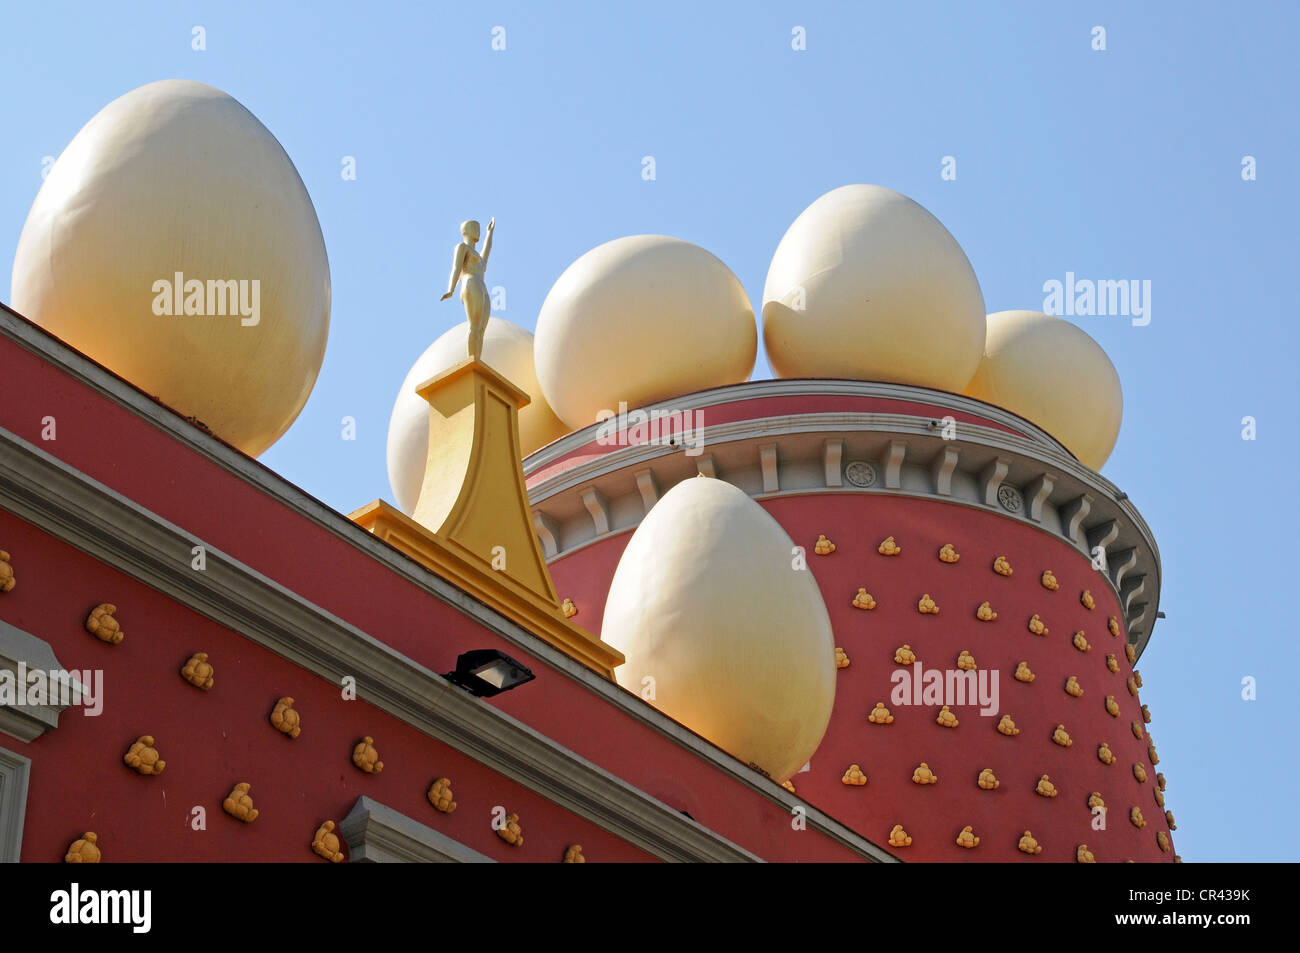 Teatre-Museu Dalí or Dalí Theatre and Museum, Figueres, Costa Brava, Catalonia, Spain, Europe - Stock Image